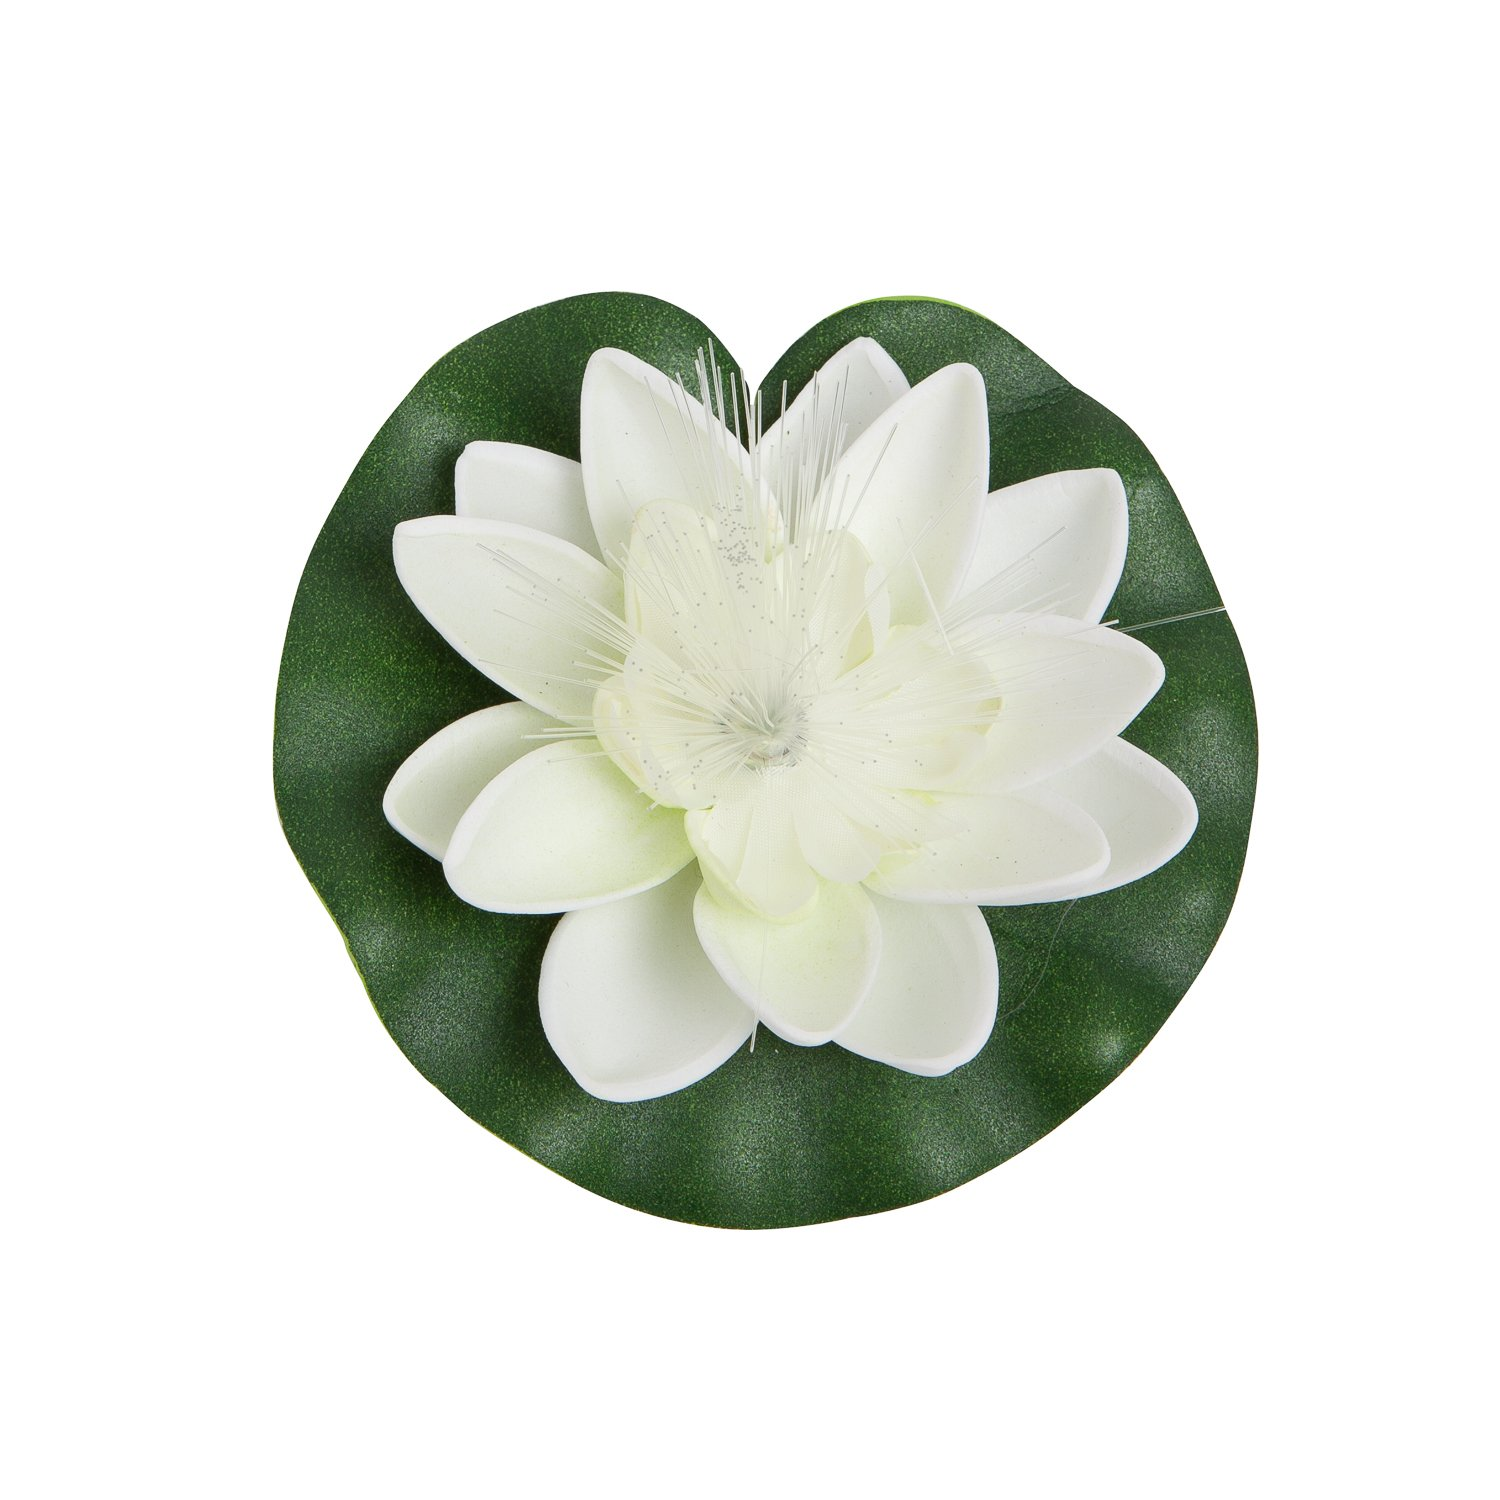 Amazon best floating flowers with lights set of 6 white amazon best floating flowers with lights set of 6 white lilies beautiful pool lights decorations for a wedding or other occasion realistic izmirmasajfo